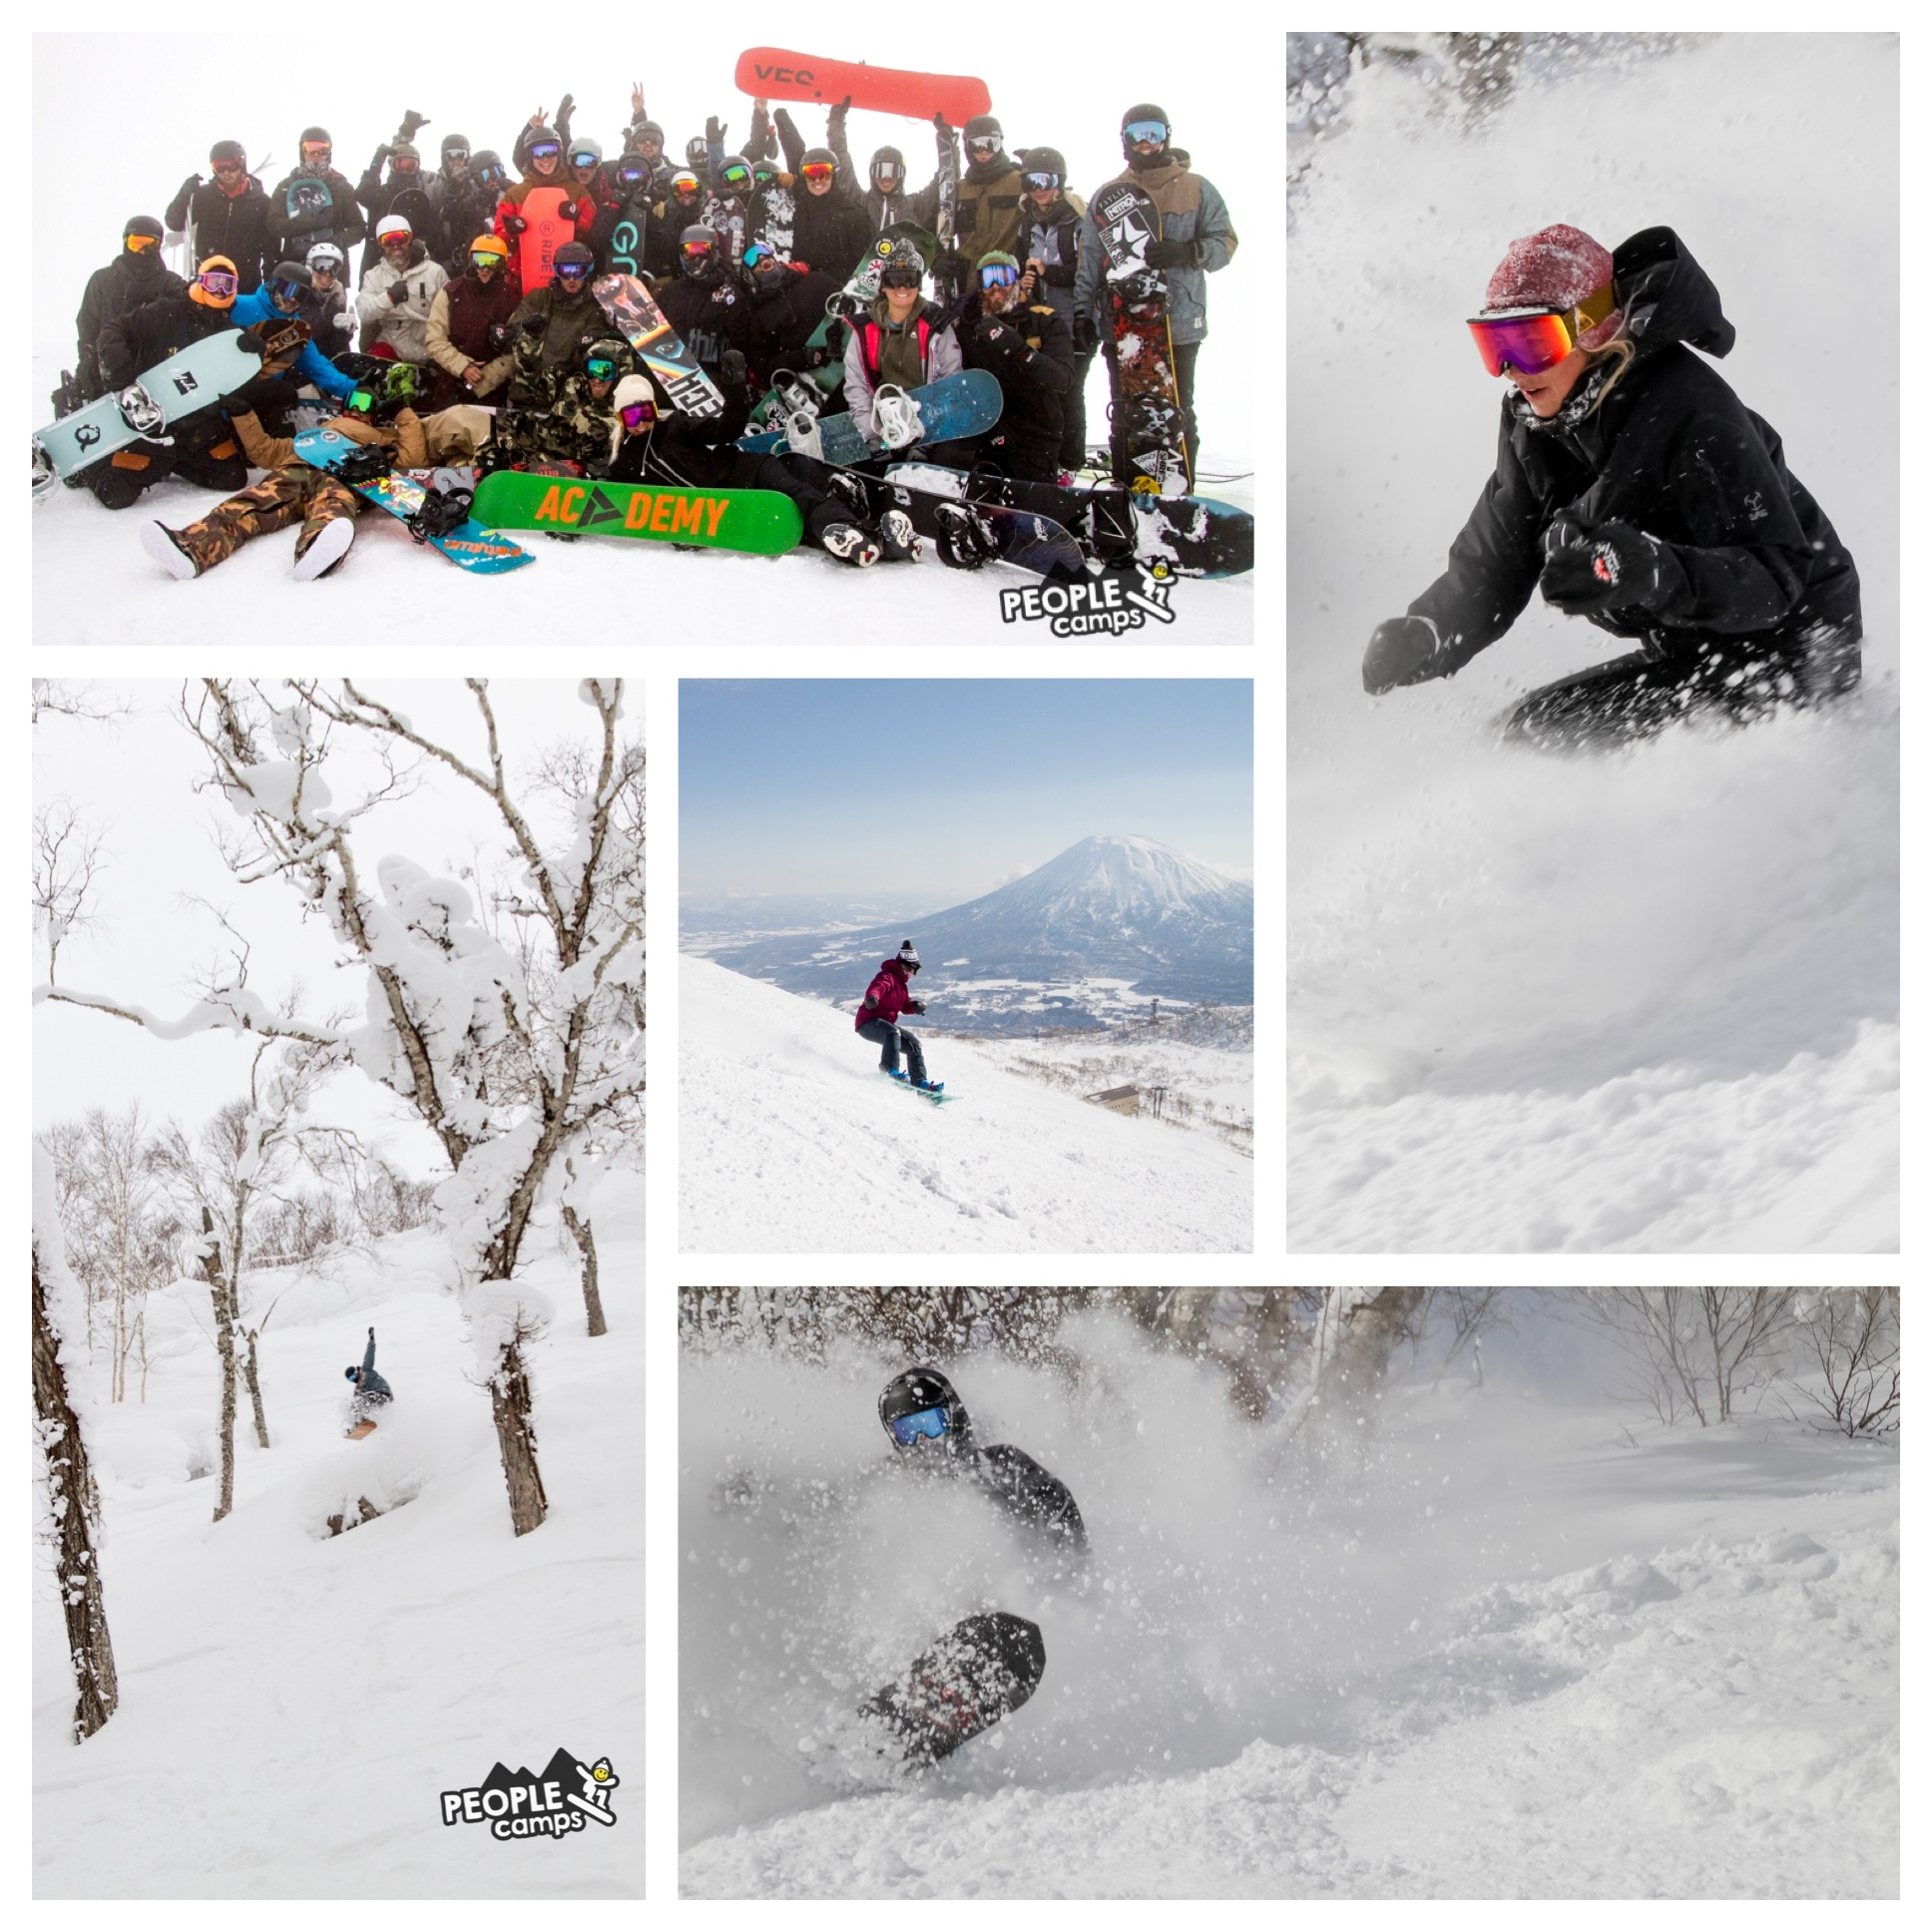 Niseko, Japan 2020 - You have a 2 week or 1 week camp option. If you choose 1 week it can be either of the dates below.Week 1 - 16th Feb - 23rd FebWeek 2 - 23rd Feb - 01st Mar$2100 7 Nights ($500 deposit)$3599 14 Nights ($600 deposit)Book your spot before Sep 1st 2019 and receive our Early Bird Product Bonus-Yuki Threads x People Camps long sleeve-Rad Gloves x People Camps leather mitts-Snuph wax. All natural wax pack